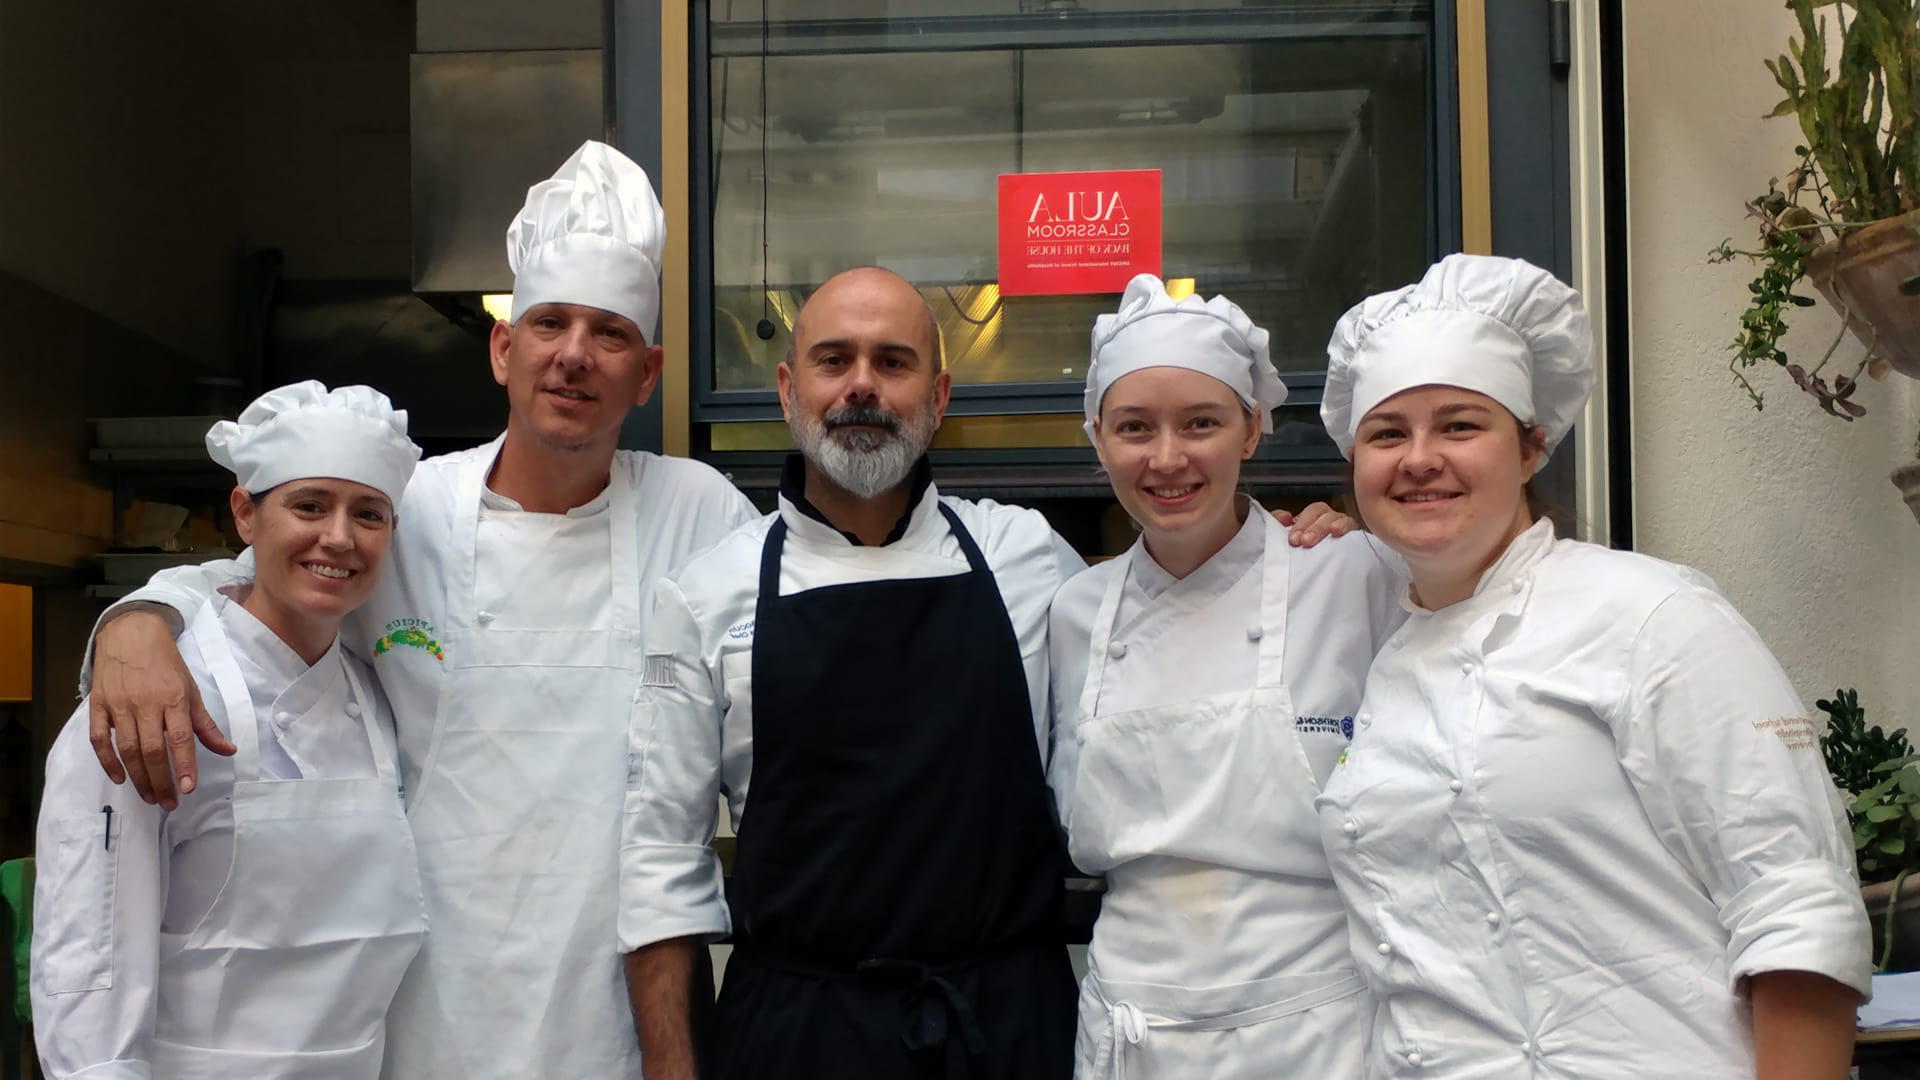 CQ9电子游戏 Denver student Kenny Sargent in Italy with fellow CQ9电子游戏 students Sarah Hegge, Cora Gaines and Kate Ethridge. (Chef Massimo Bocus in the center.)